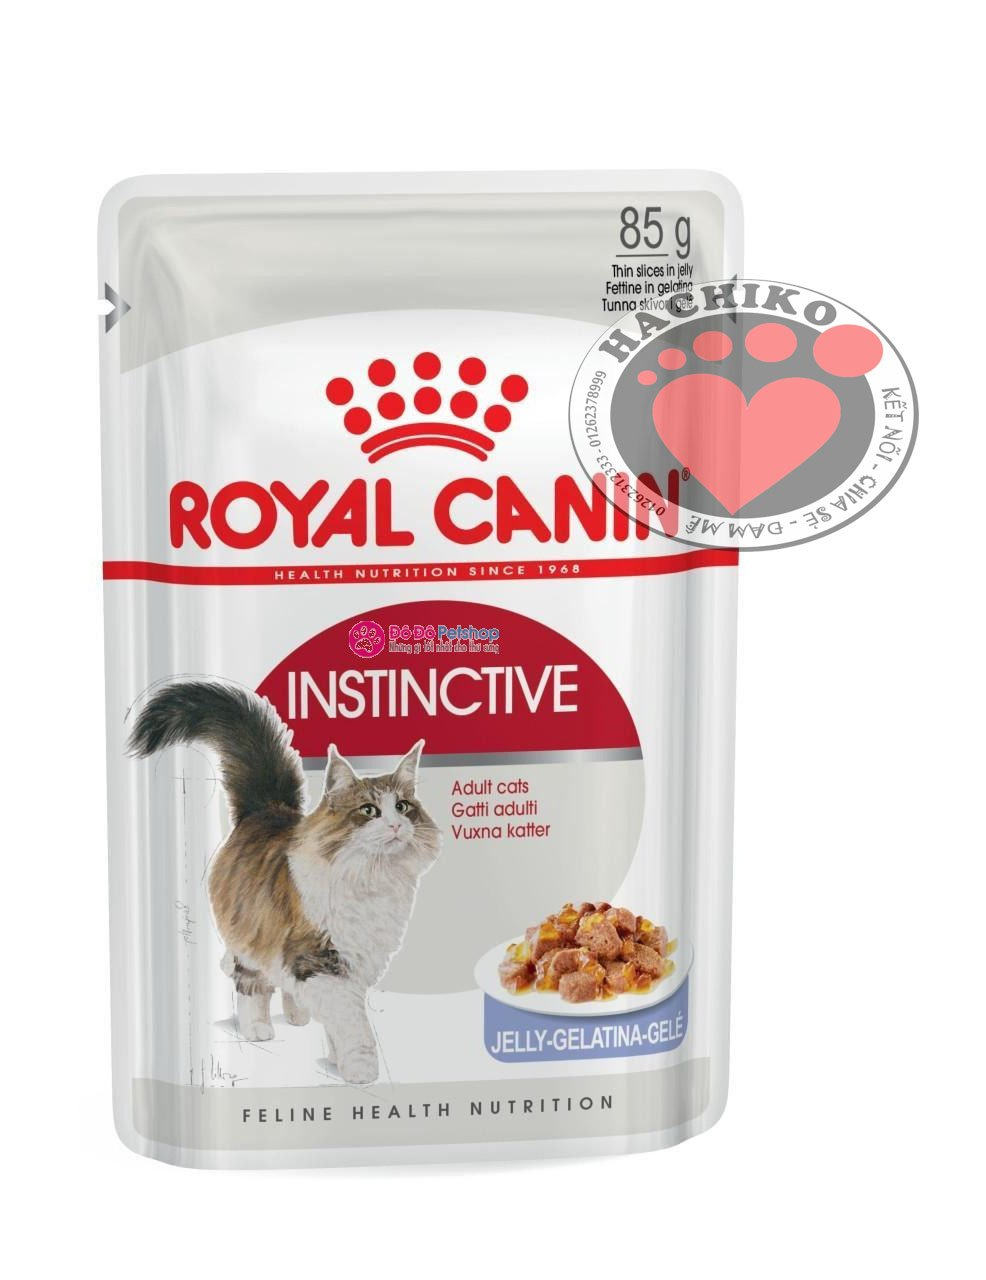 Pate Royal Canin INSTINCTIVE (Jelly) 85g